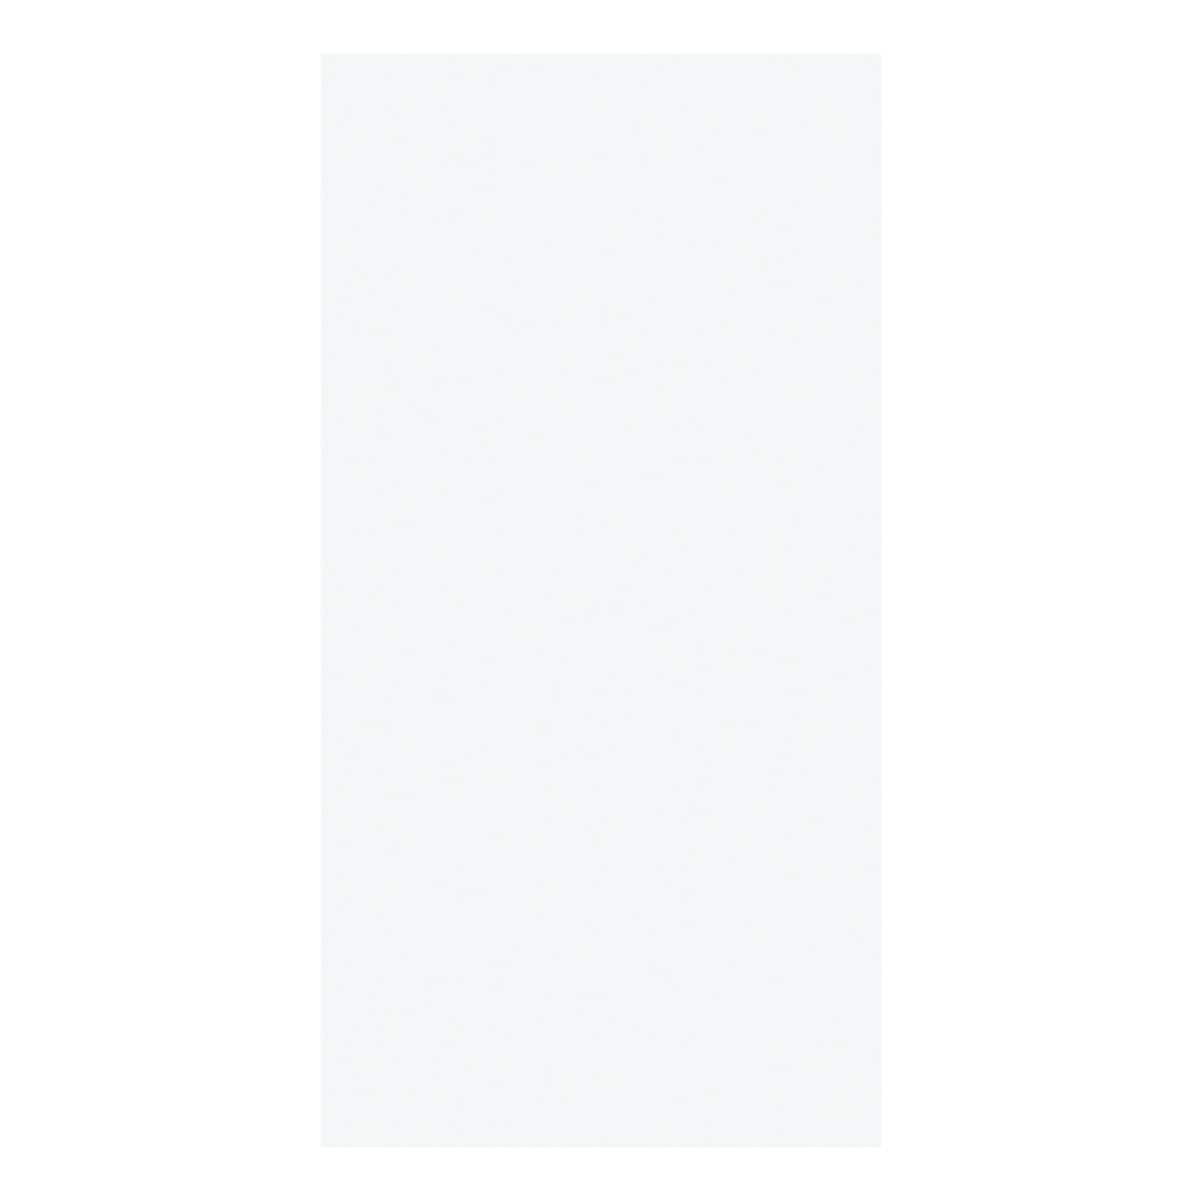 Whiteboard Günstig Legamaster Whiteboardfolie Wrap Up 7 106203 Bei Otto